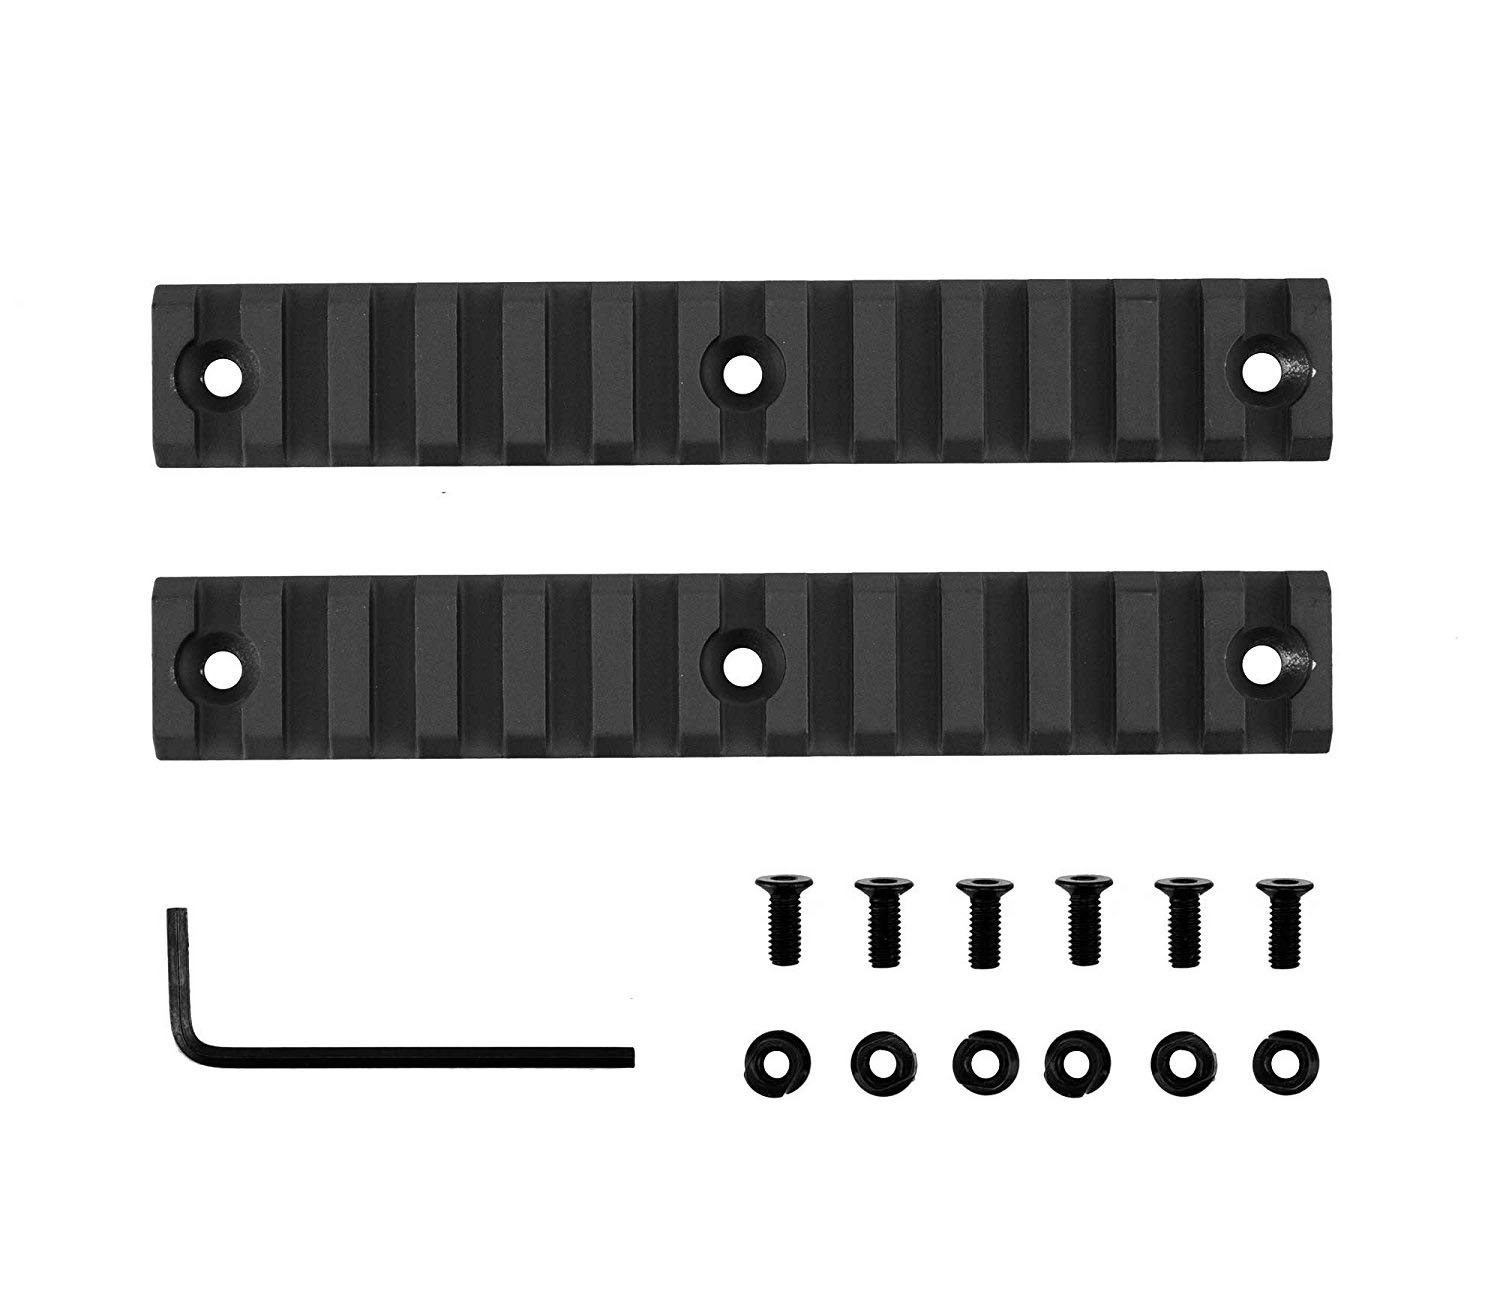 LVLING 13 Slot/5.25 Inches Mid Length Picatinny/Weaver Rail Rail for Keymod Systems (2 Pieces Matte black)